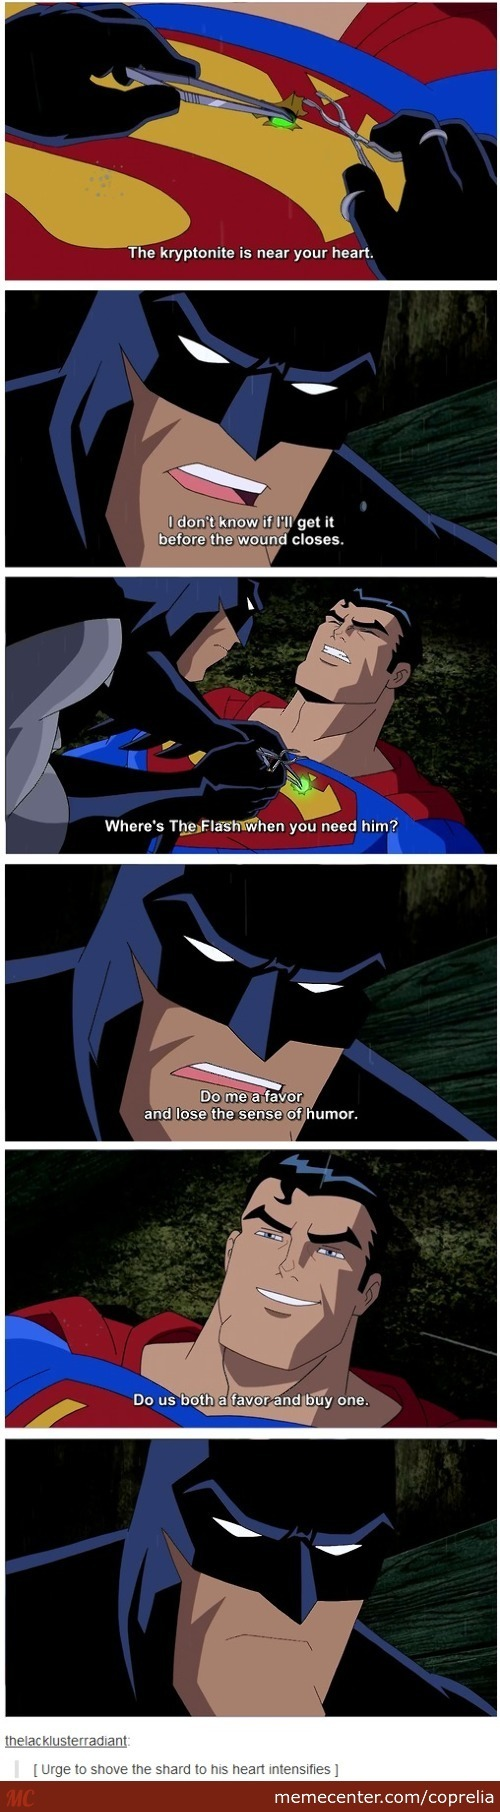 Batsy: Real Tired Of Your Shit, Supes